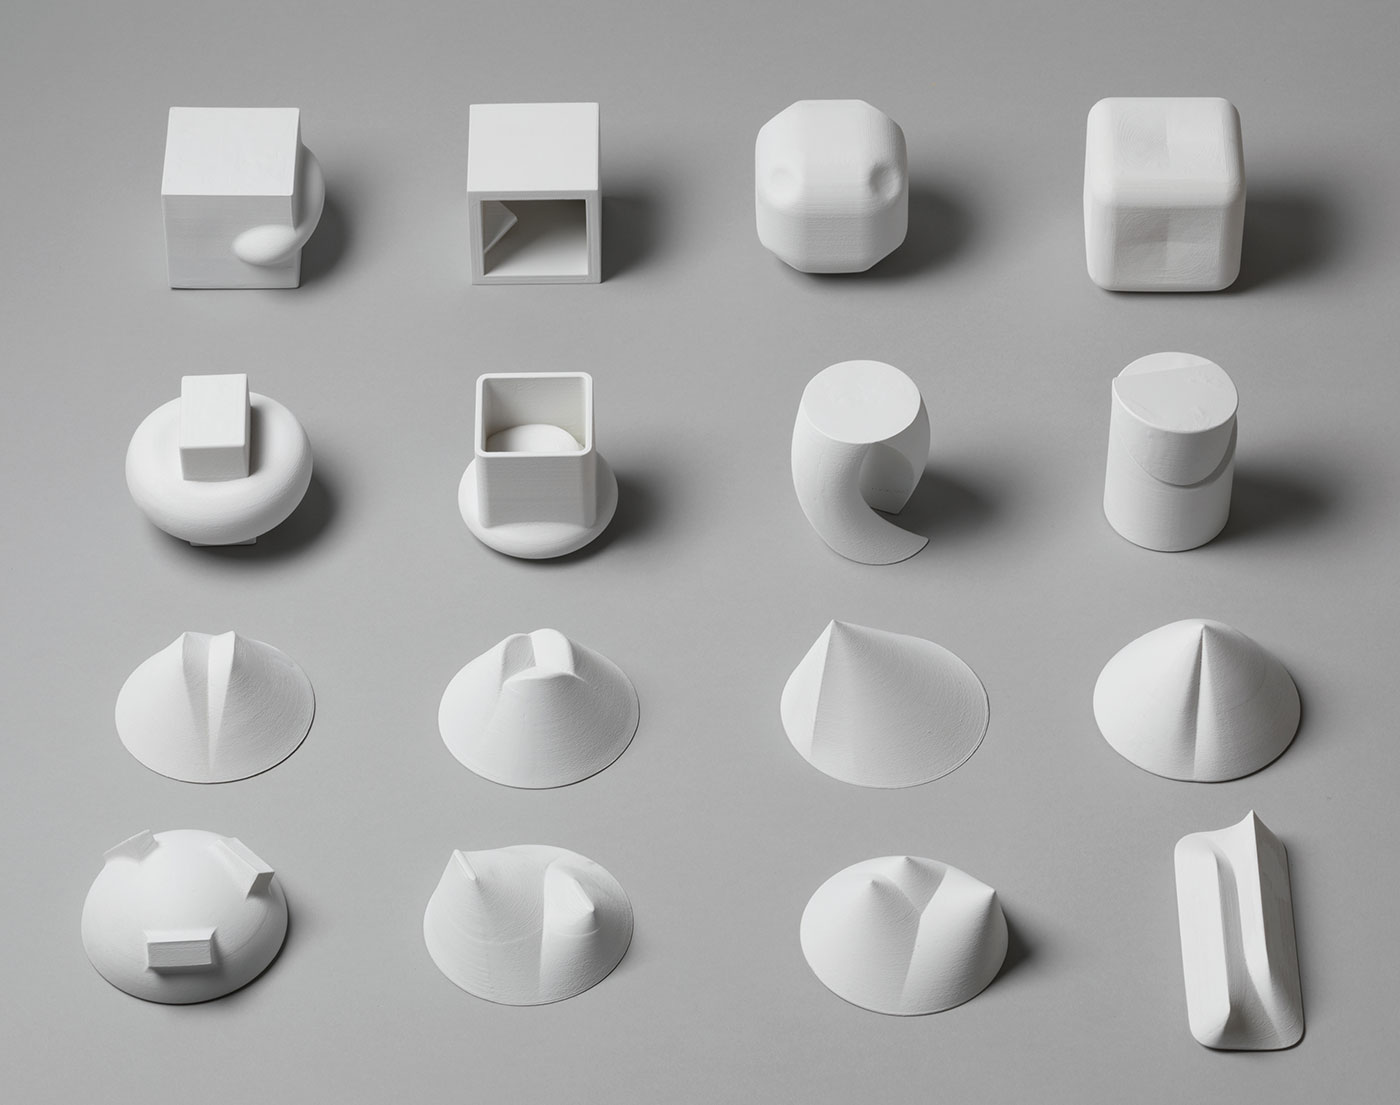 Yi Zhang - Three-dimensional Form Study